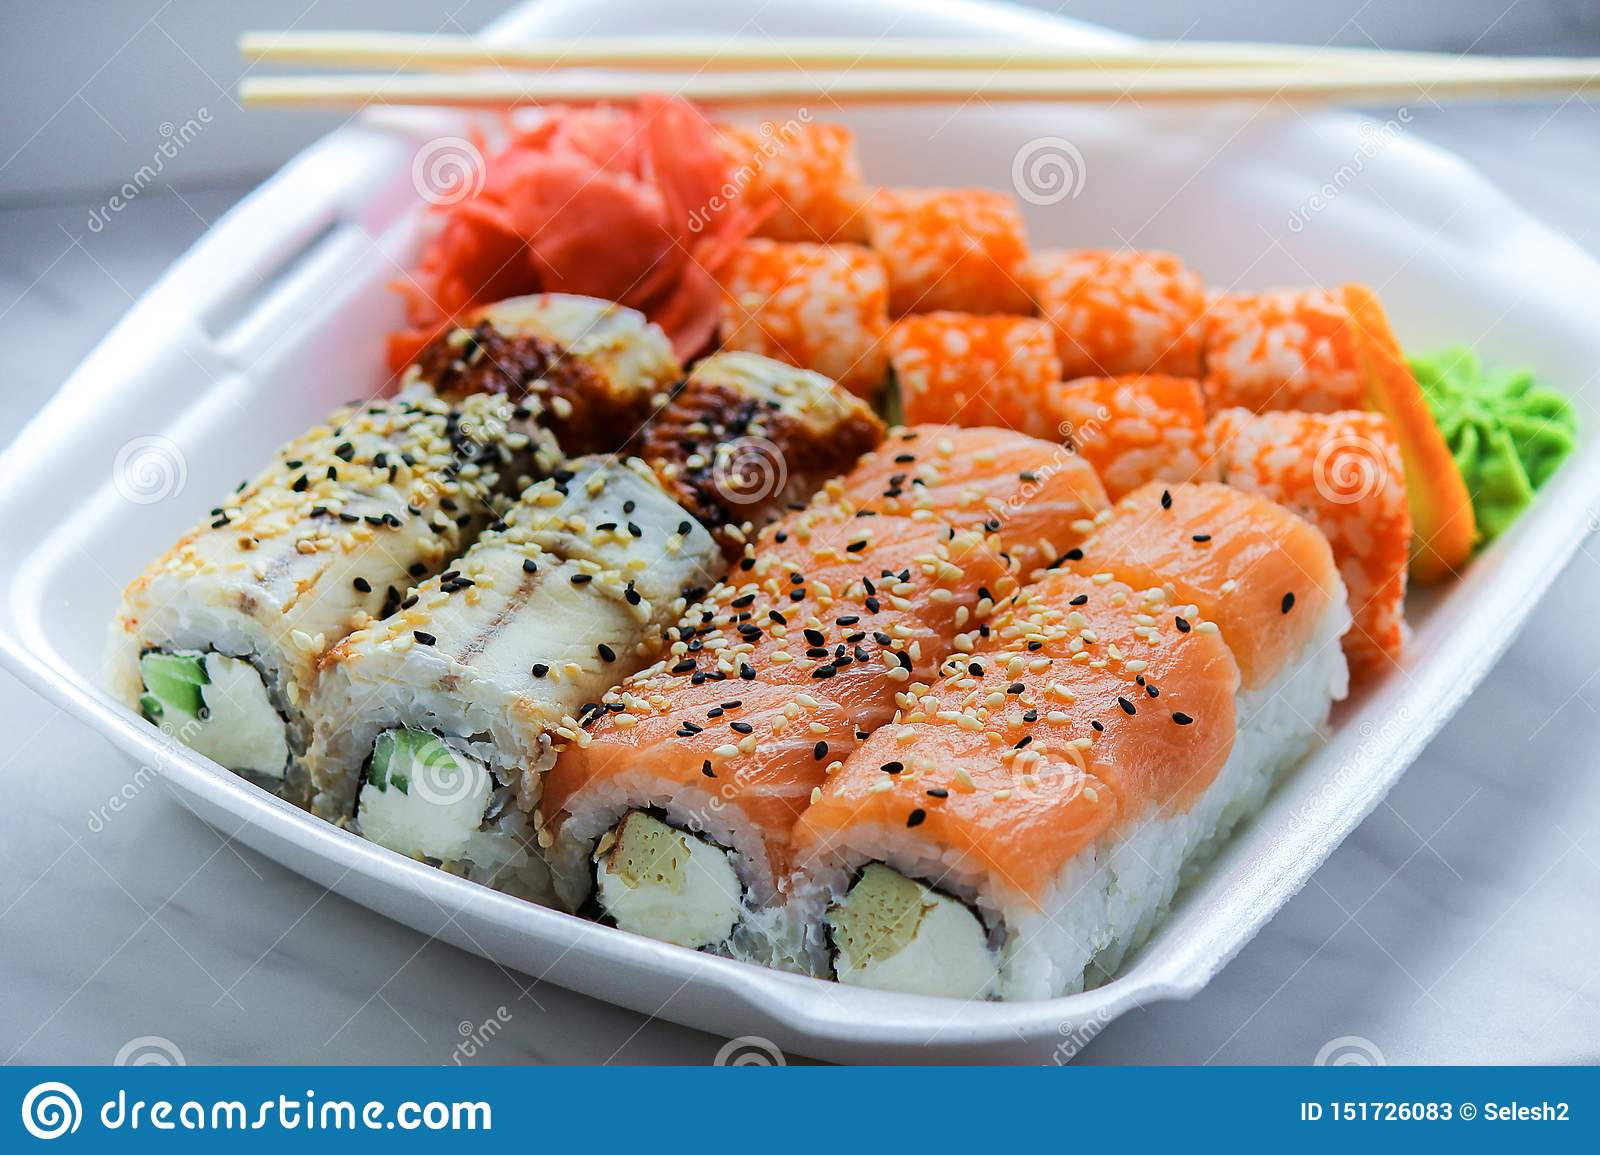 Home Delivery Of Fast Food Sushi With Fish And Rice Stock Image Image Of Delivery Dinner 151726083